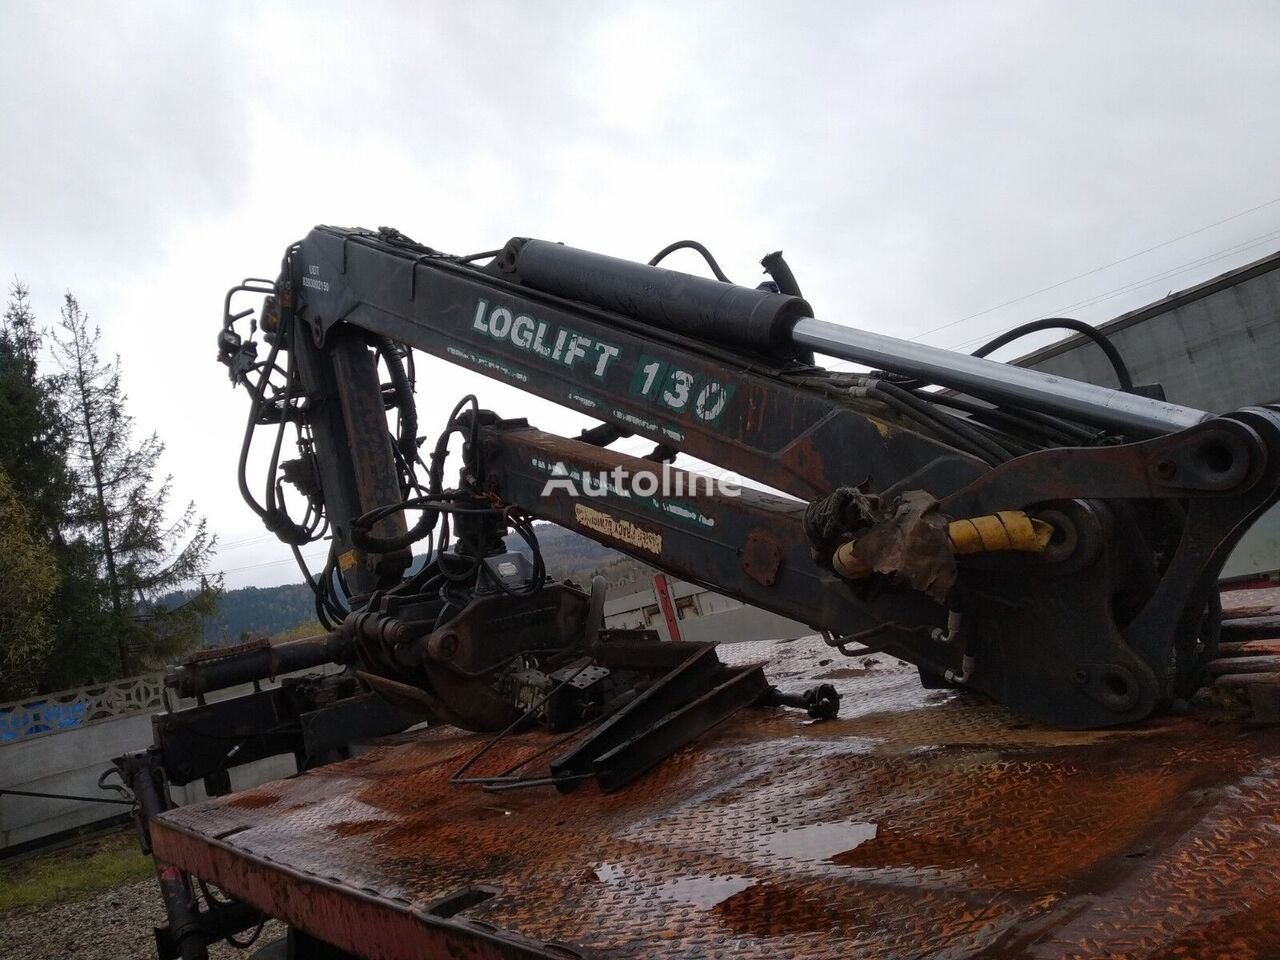 LOGLIFT E 130 s celtnis-manipulators